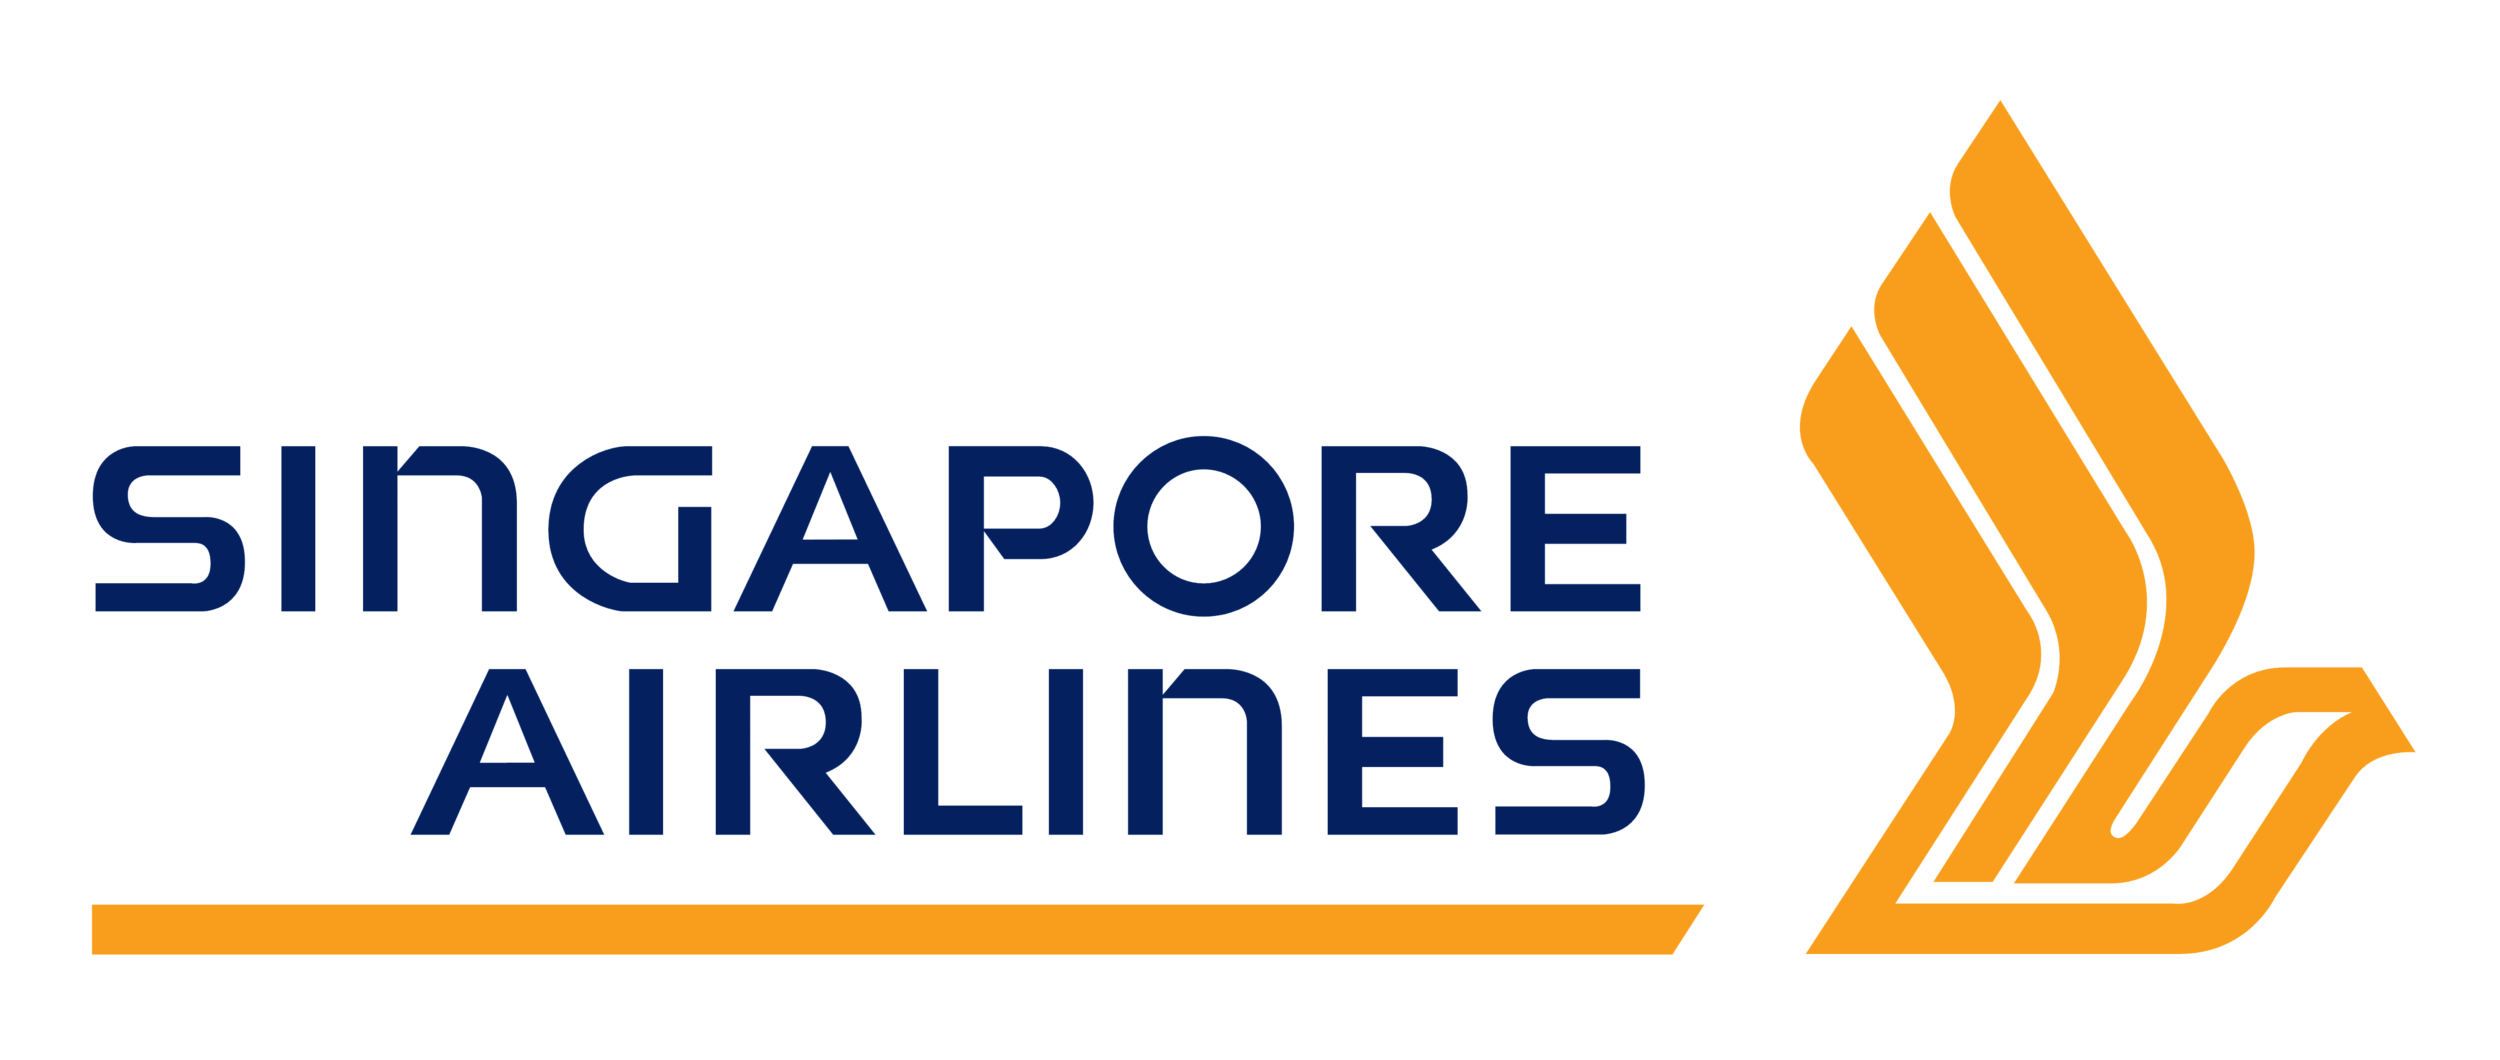 singapore-airlines-logo-png--4600.png